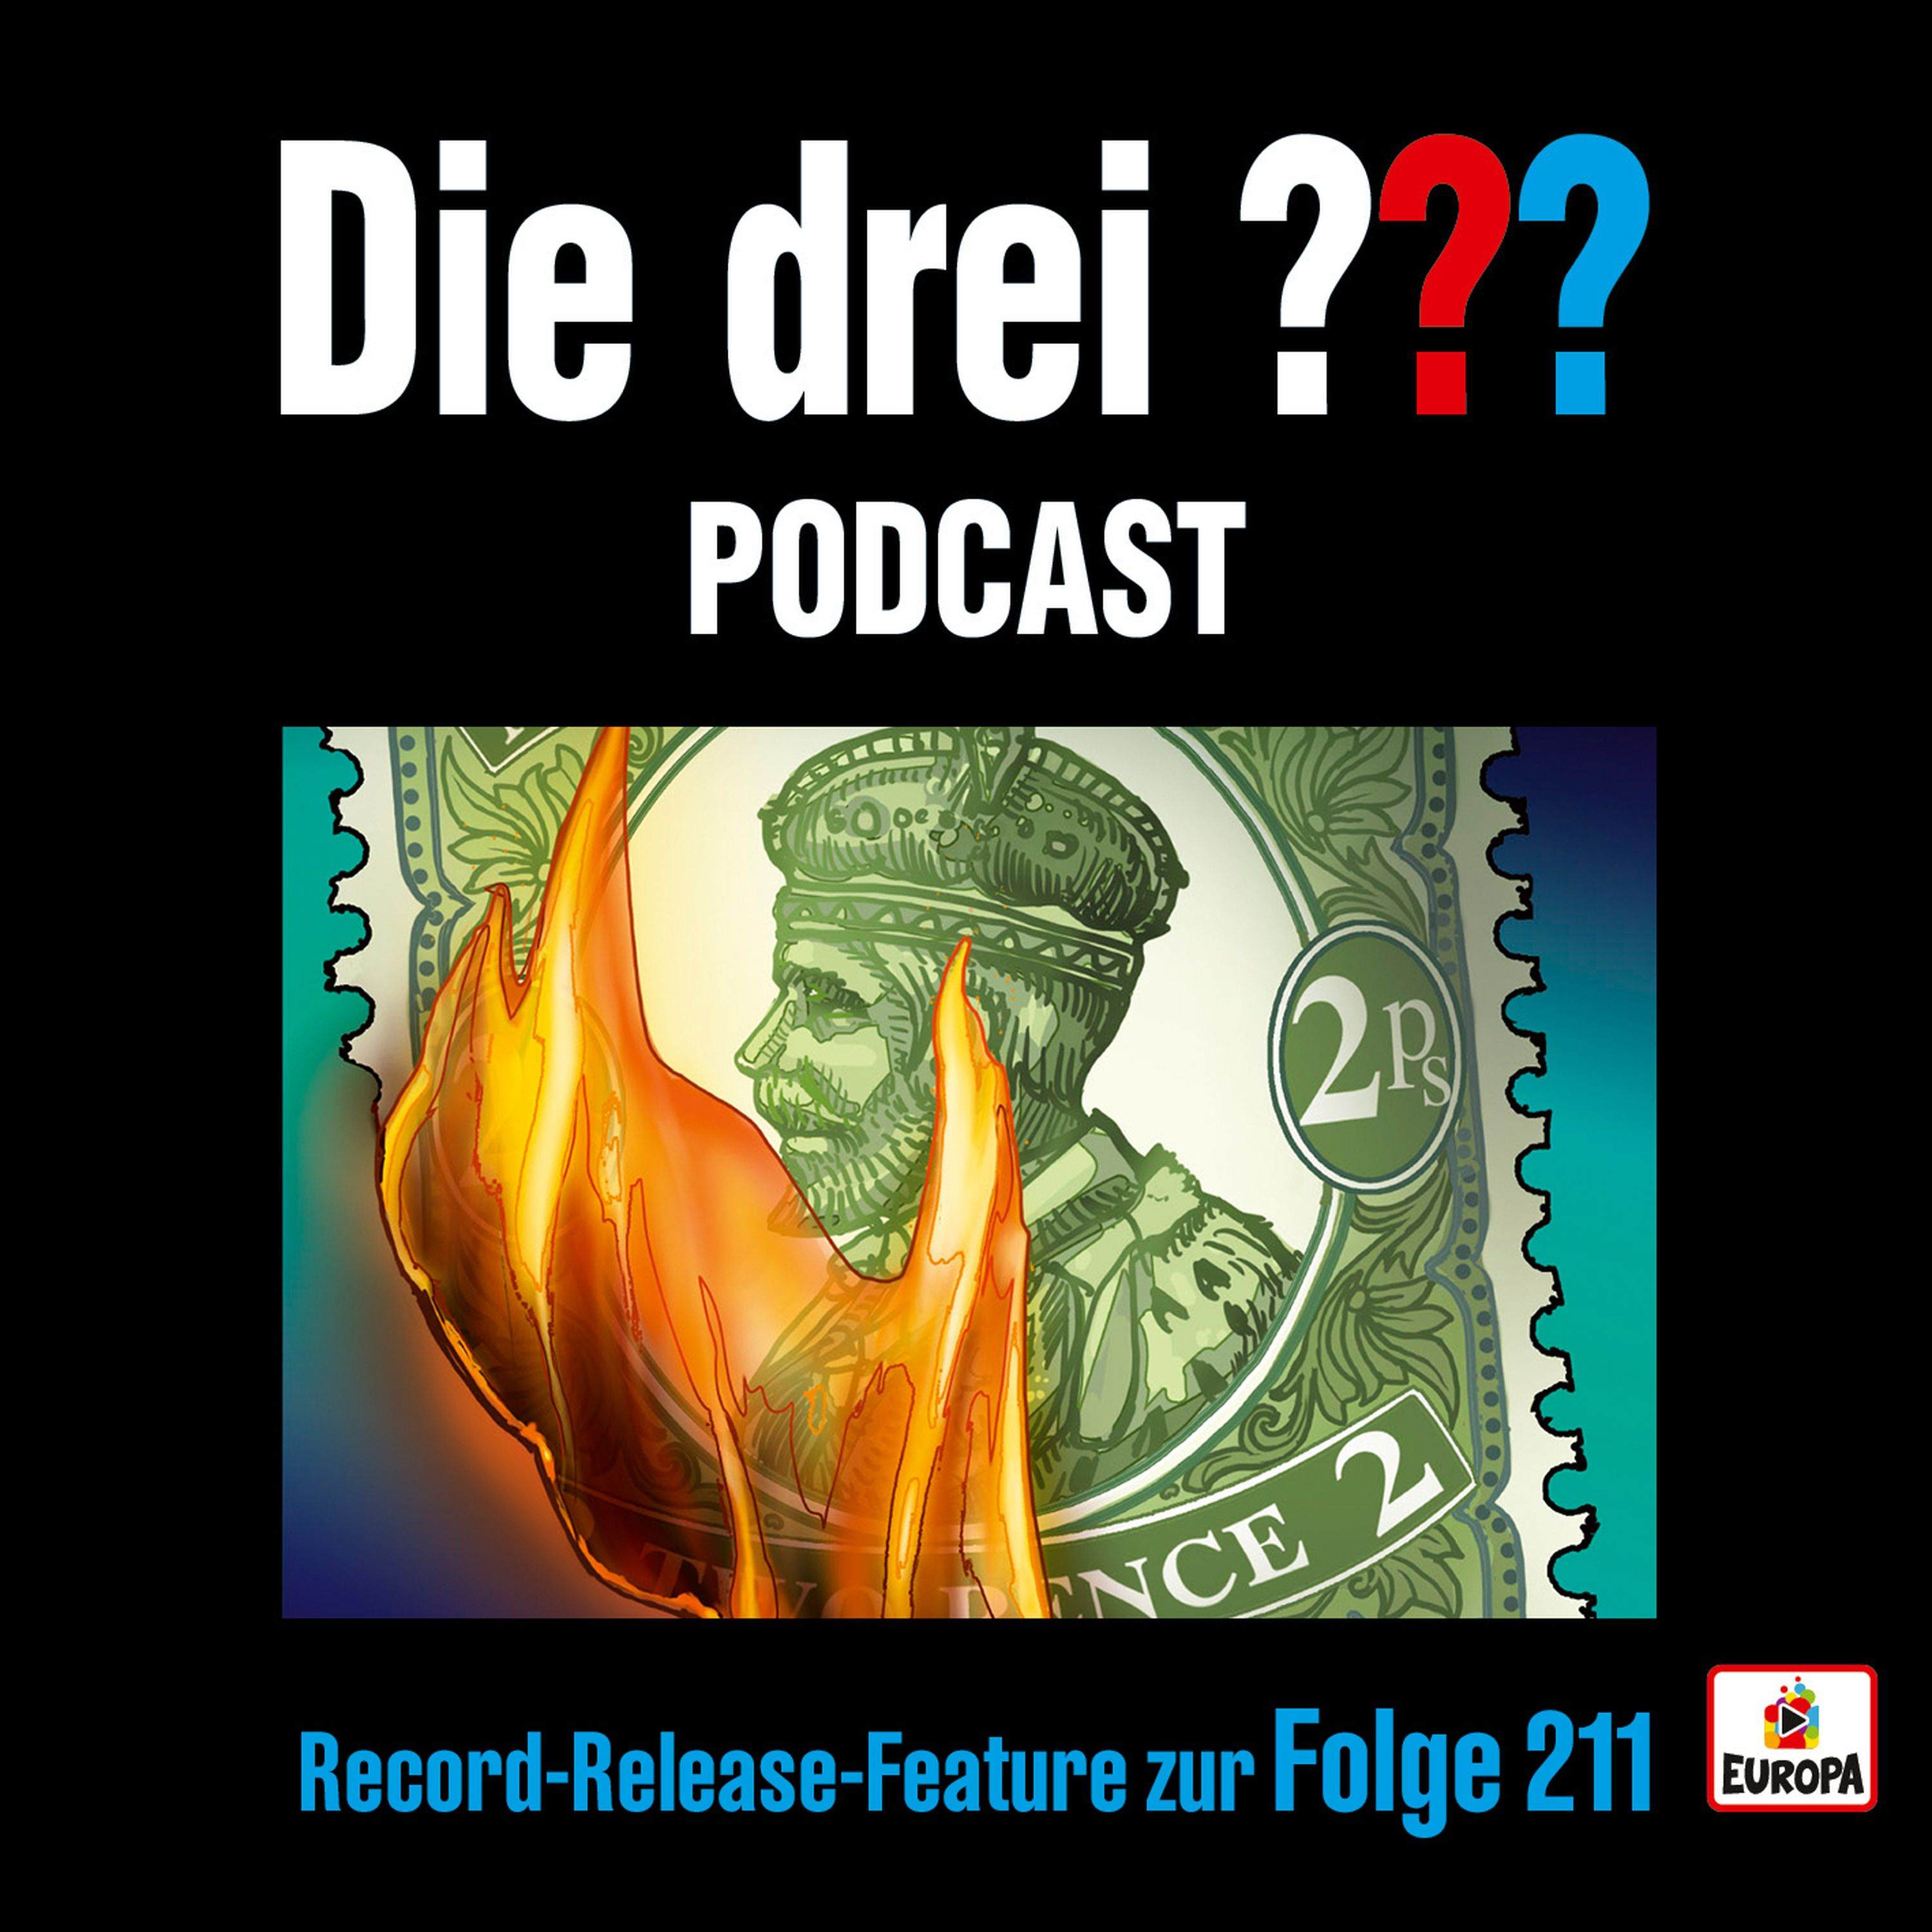 Record-Release-Feature zur Folge 211